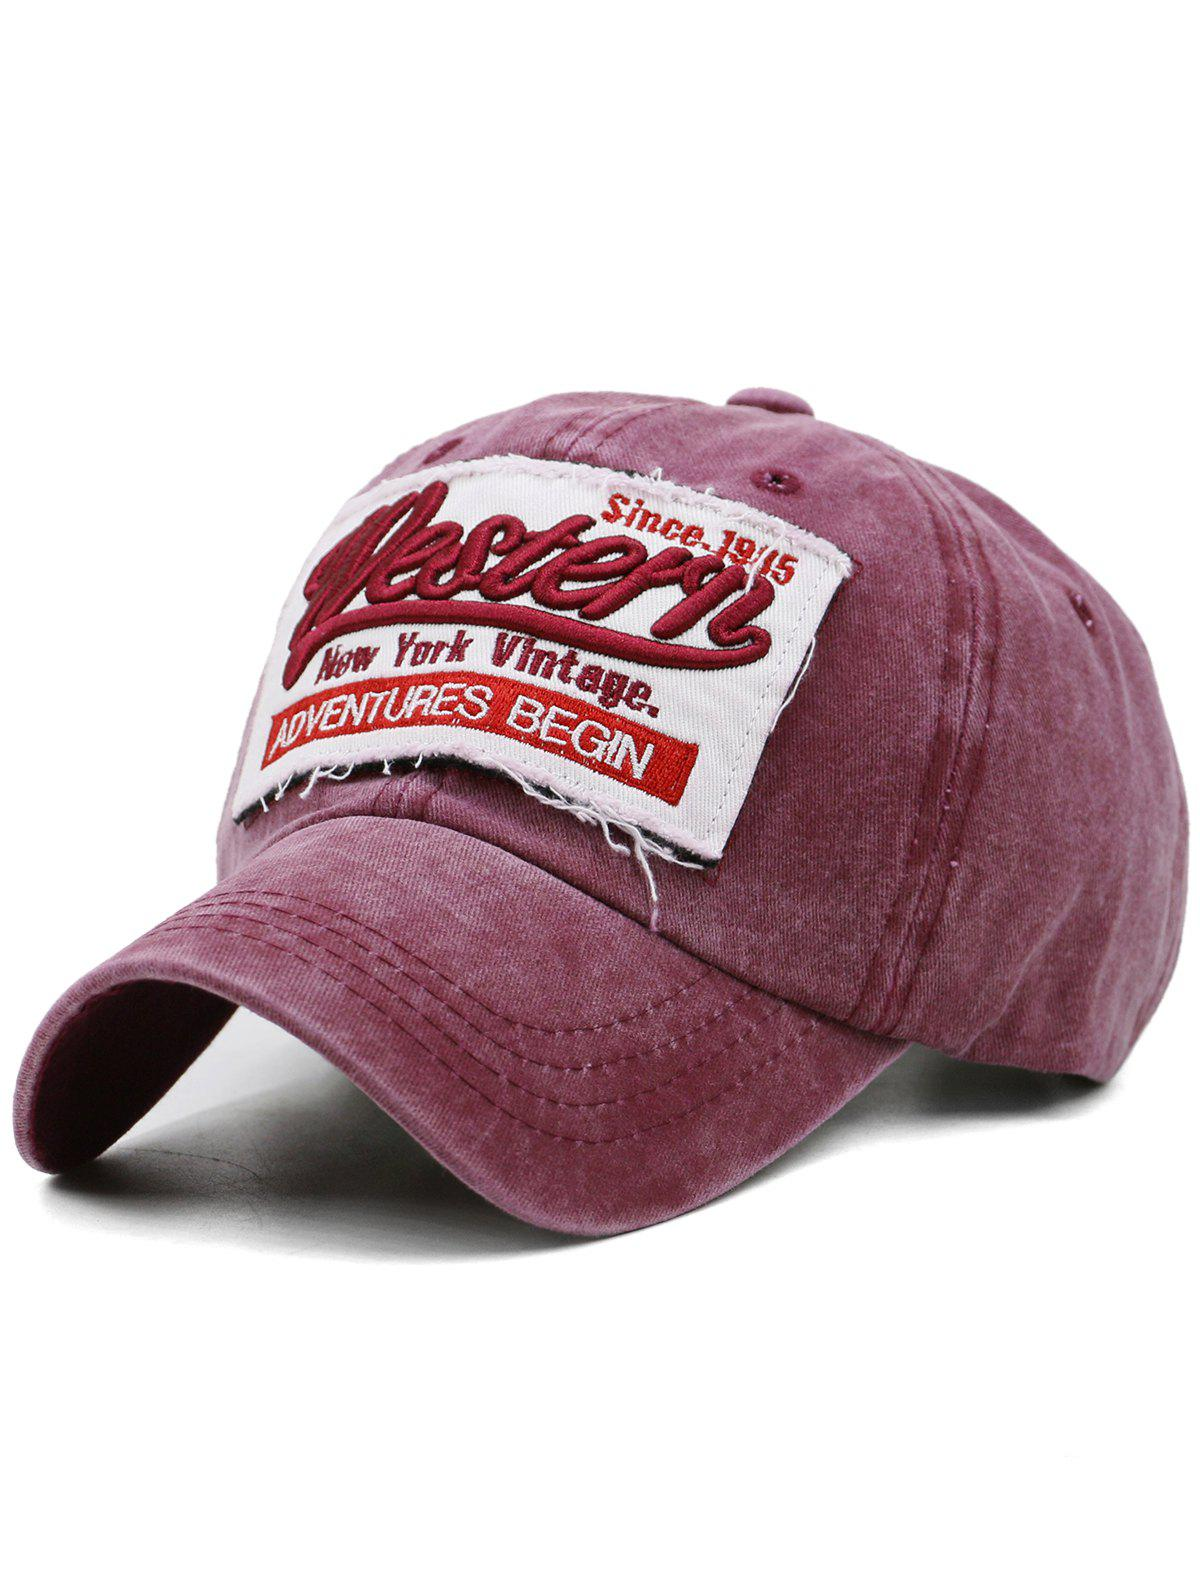 Letter Embroidery Washed Dyed Sunscreen Hat - RED WINE